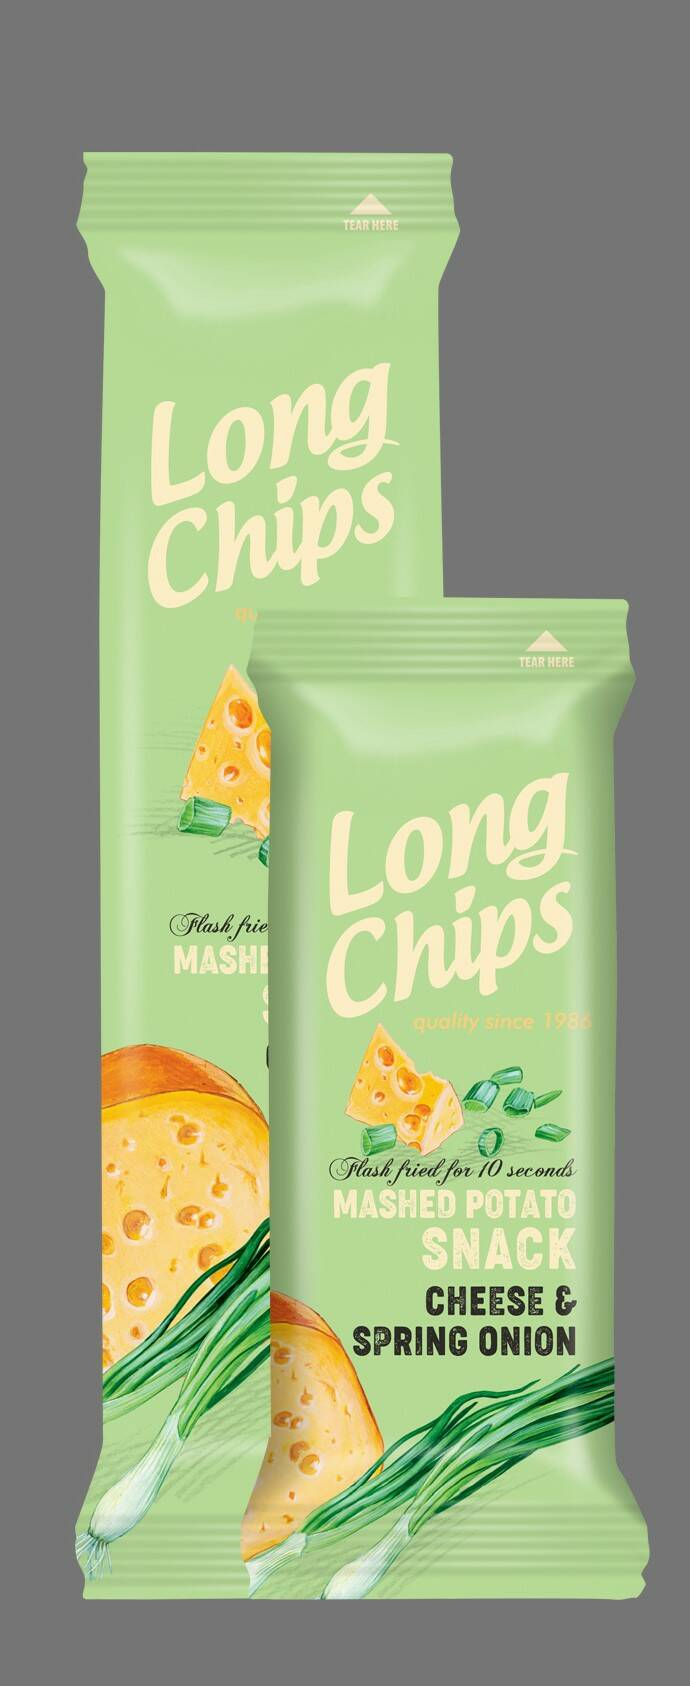 Long potato chips with cheese and spring onion